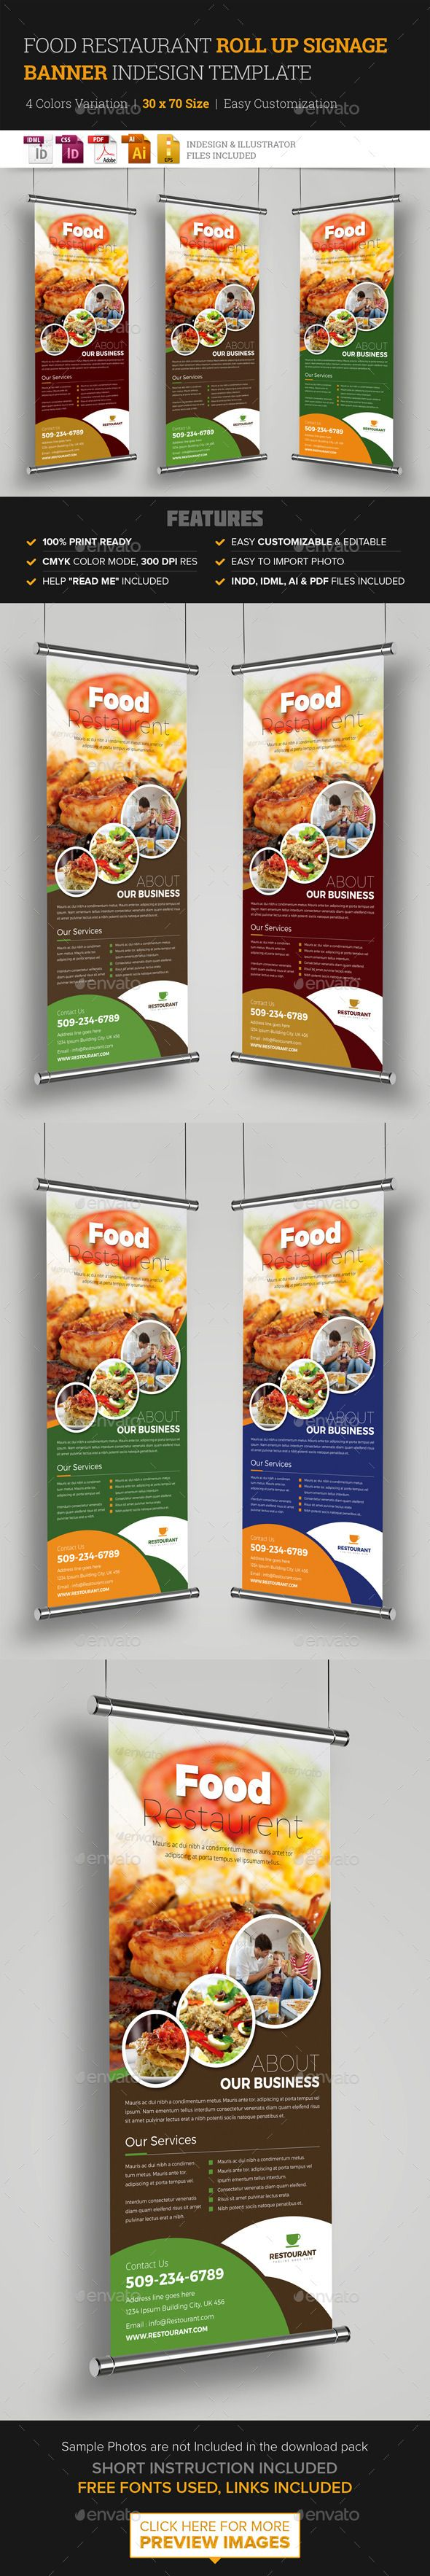 Food Restaurant Roll Up Banner Signage Template #design Download…